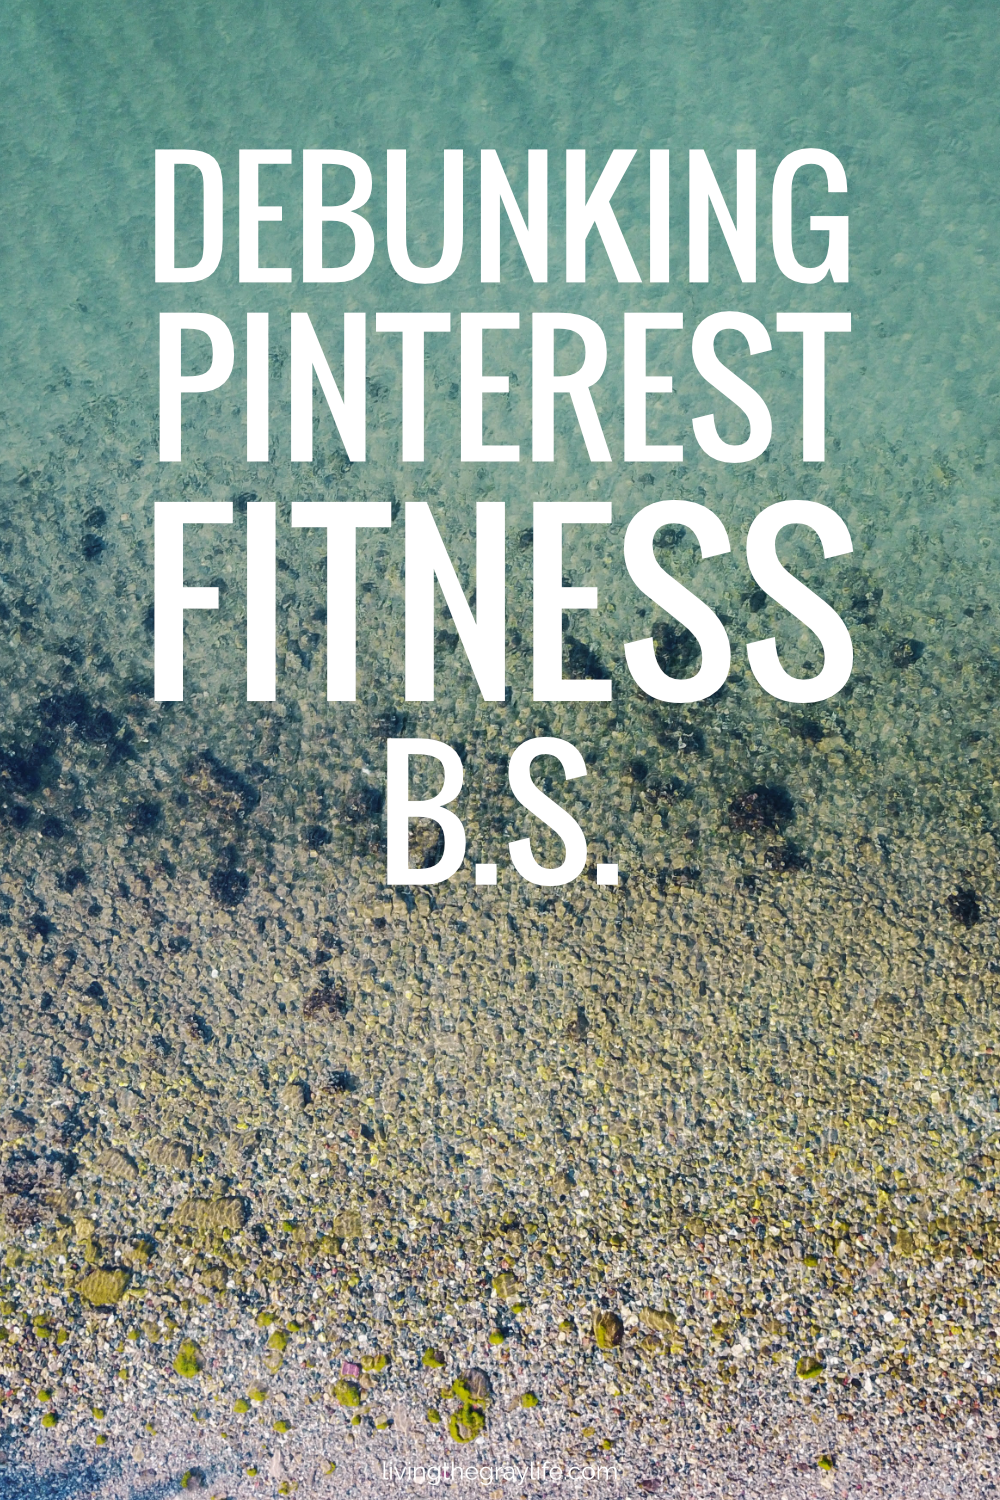 Ever come across Pinterest fitness articles and don't know how to separate fact from fiction? Look no further!